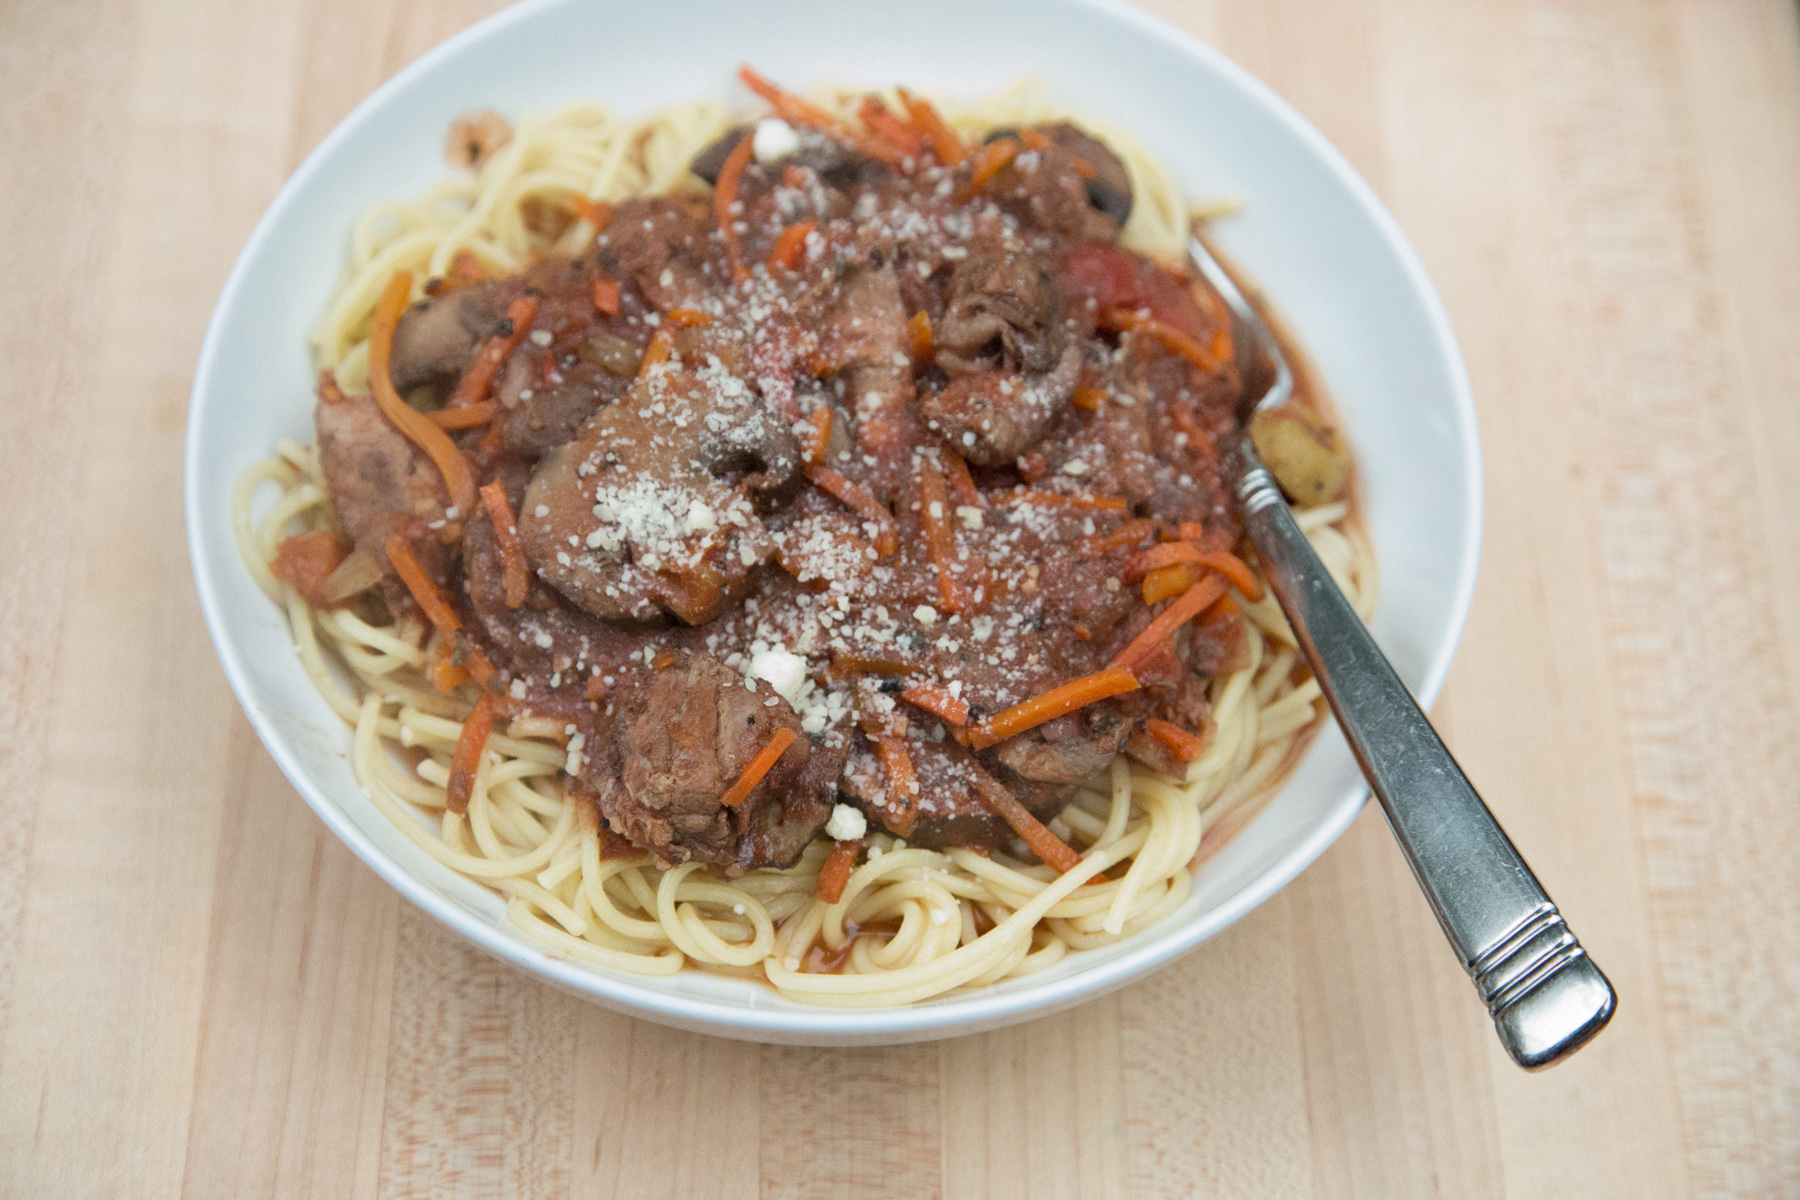 This is one of those great fix it and forget it Slow Cooker Recipes for a busy weeknight meal, Beef and Mushroom Ragu, find it on 5dollardinners.com.